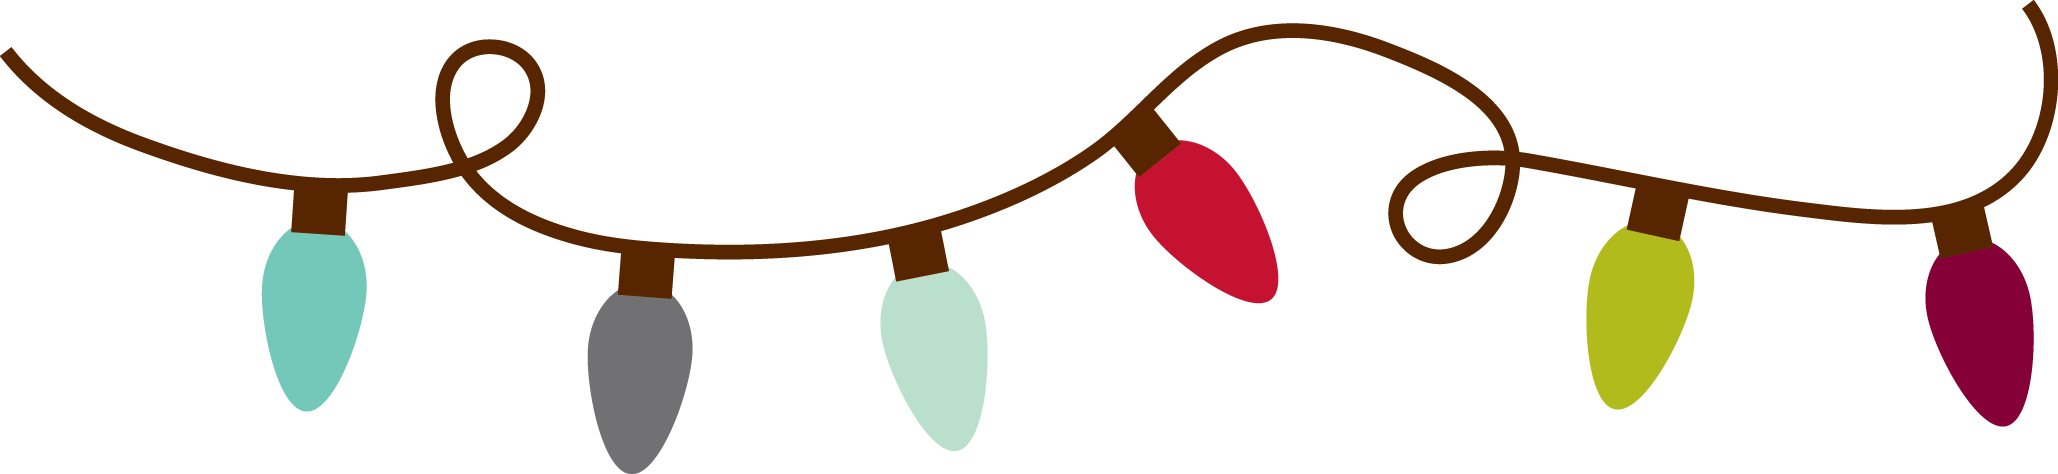 Party png. Christmas lights border transparent